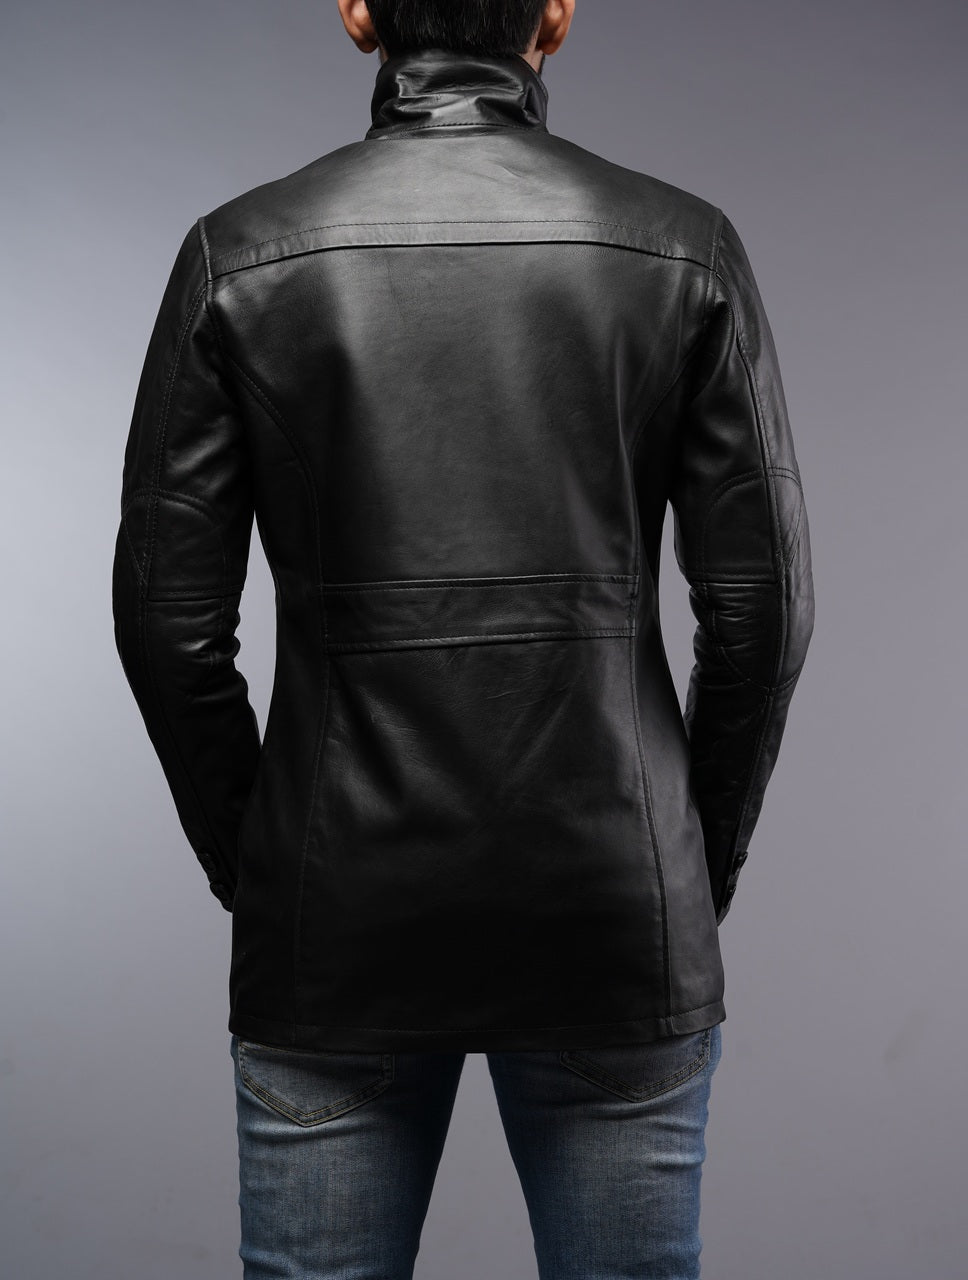 Men's Black Car Coat Leather Jacket